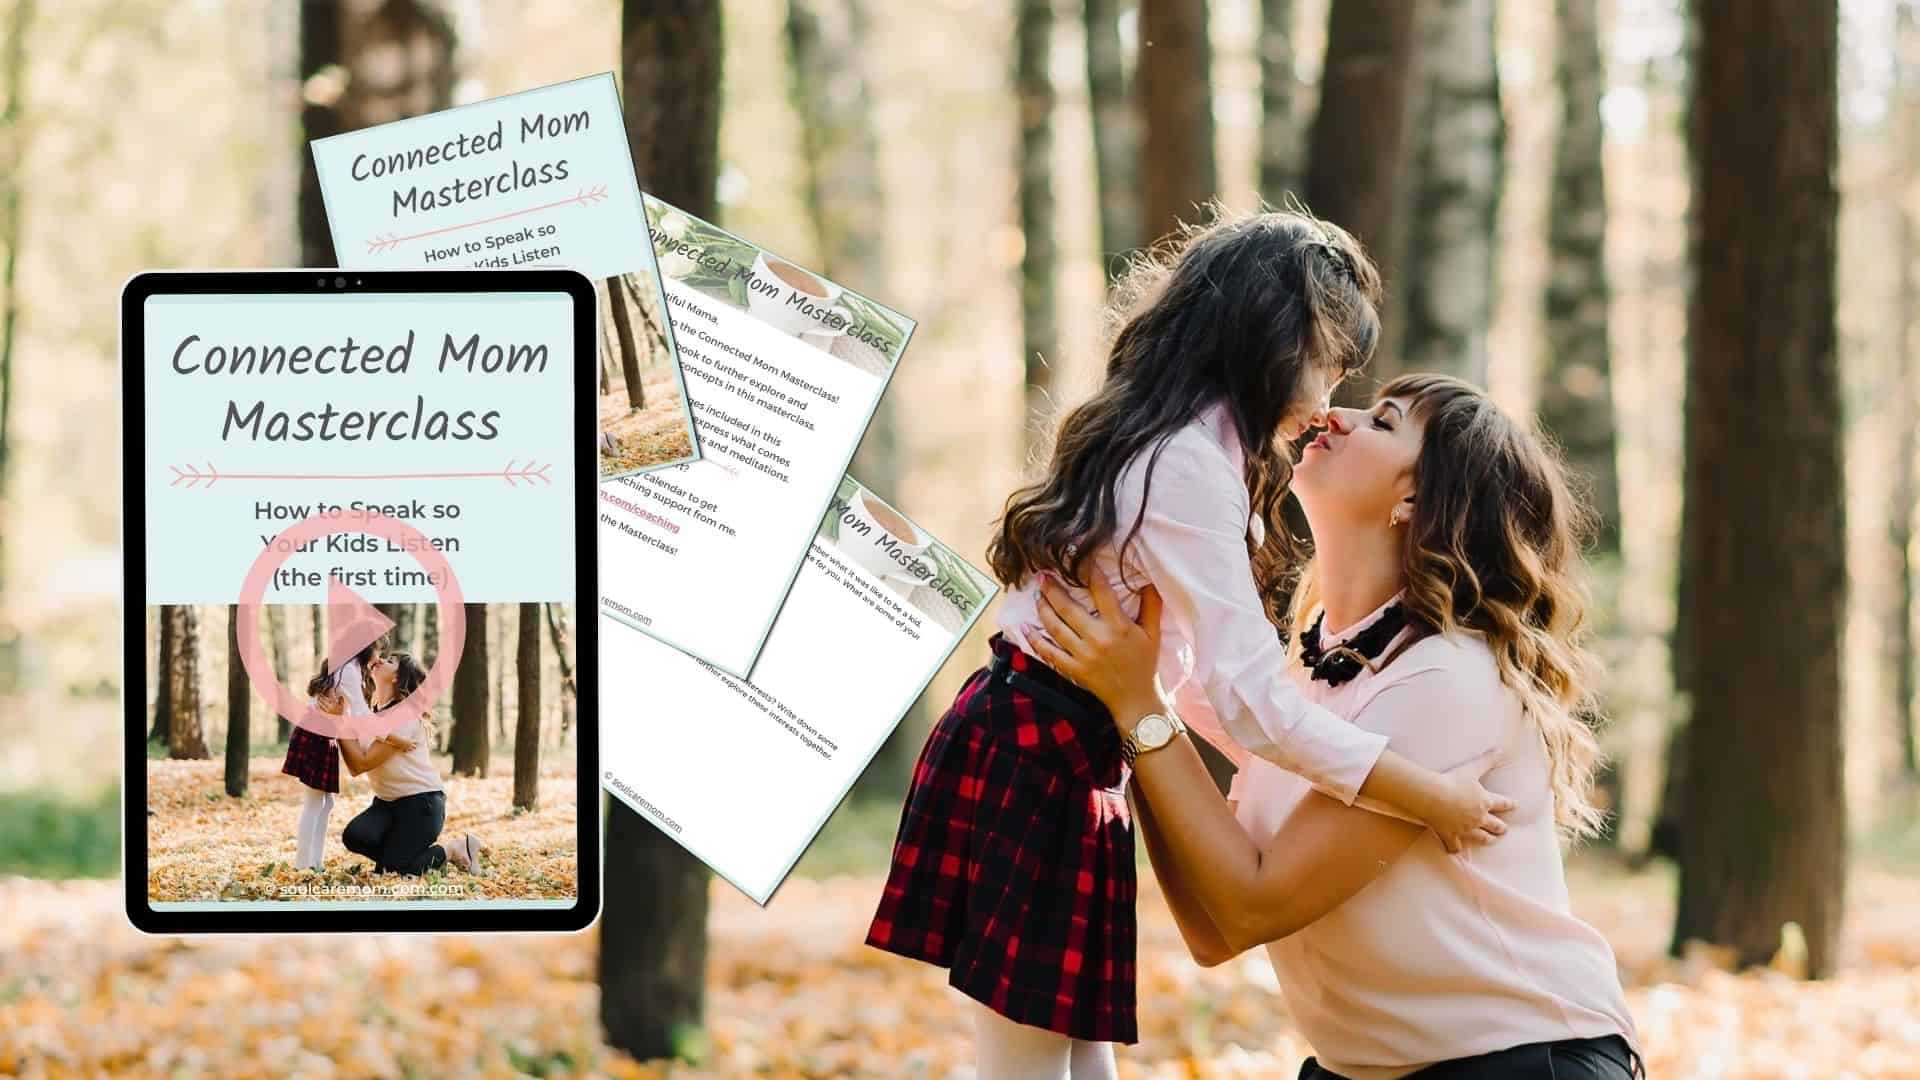 Bonus - Connected Mom Masterclass Bonus Mockup